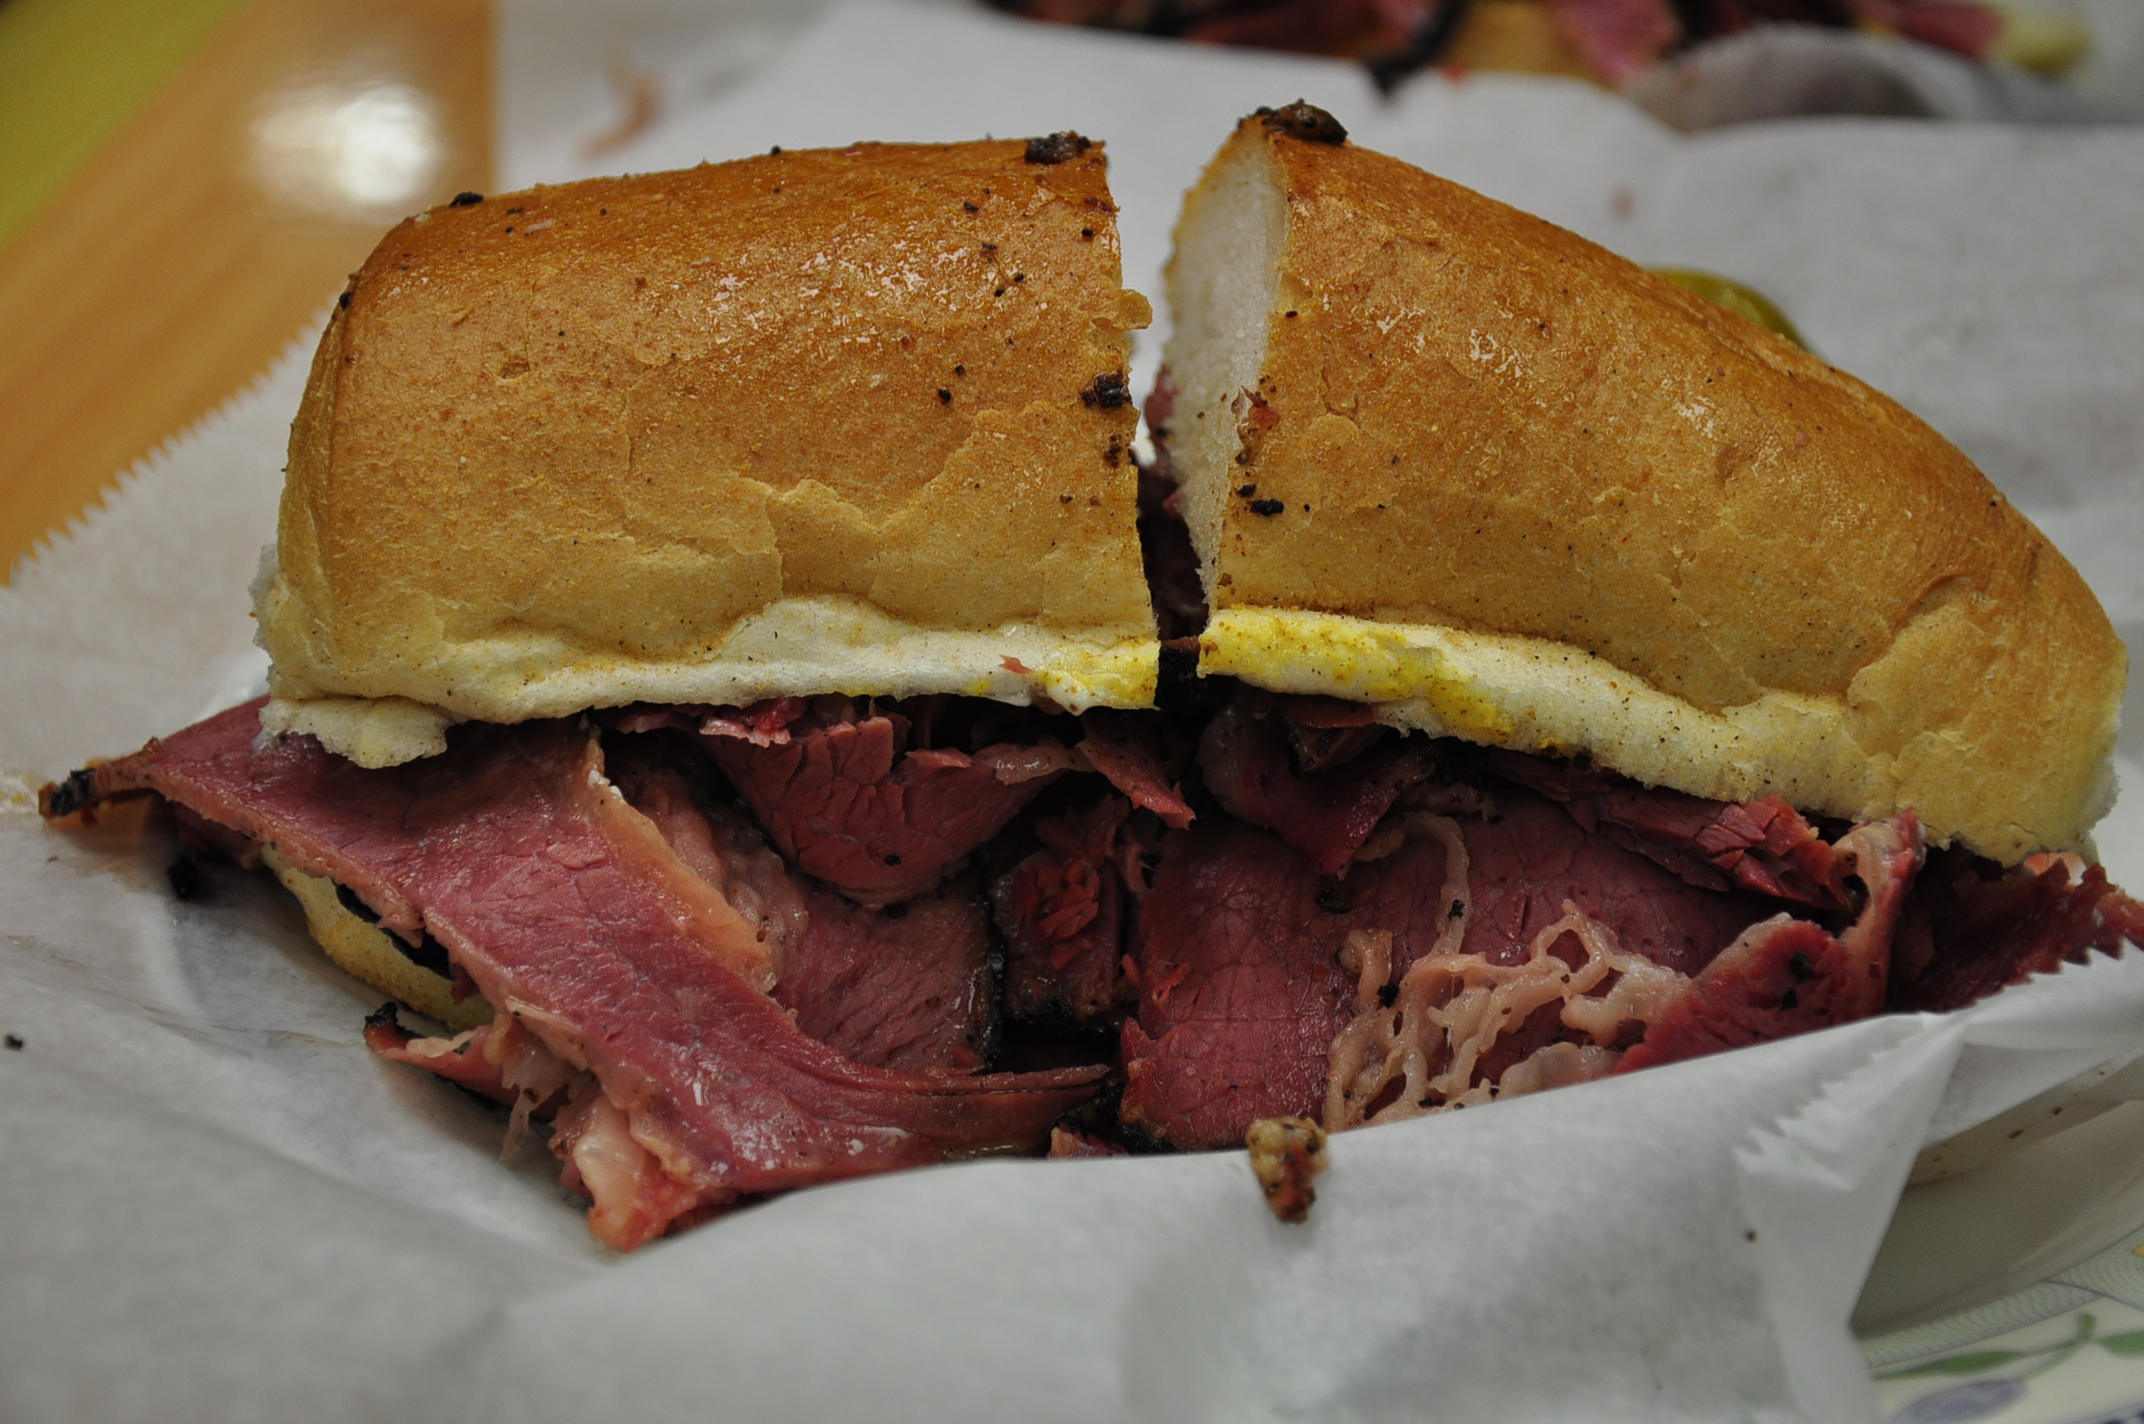 My beauty of a pastrami sandwich.